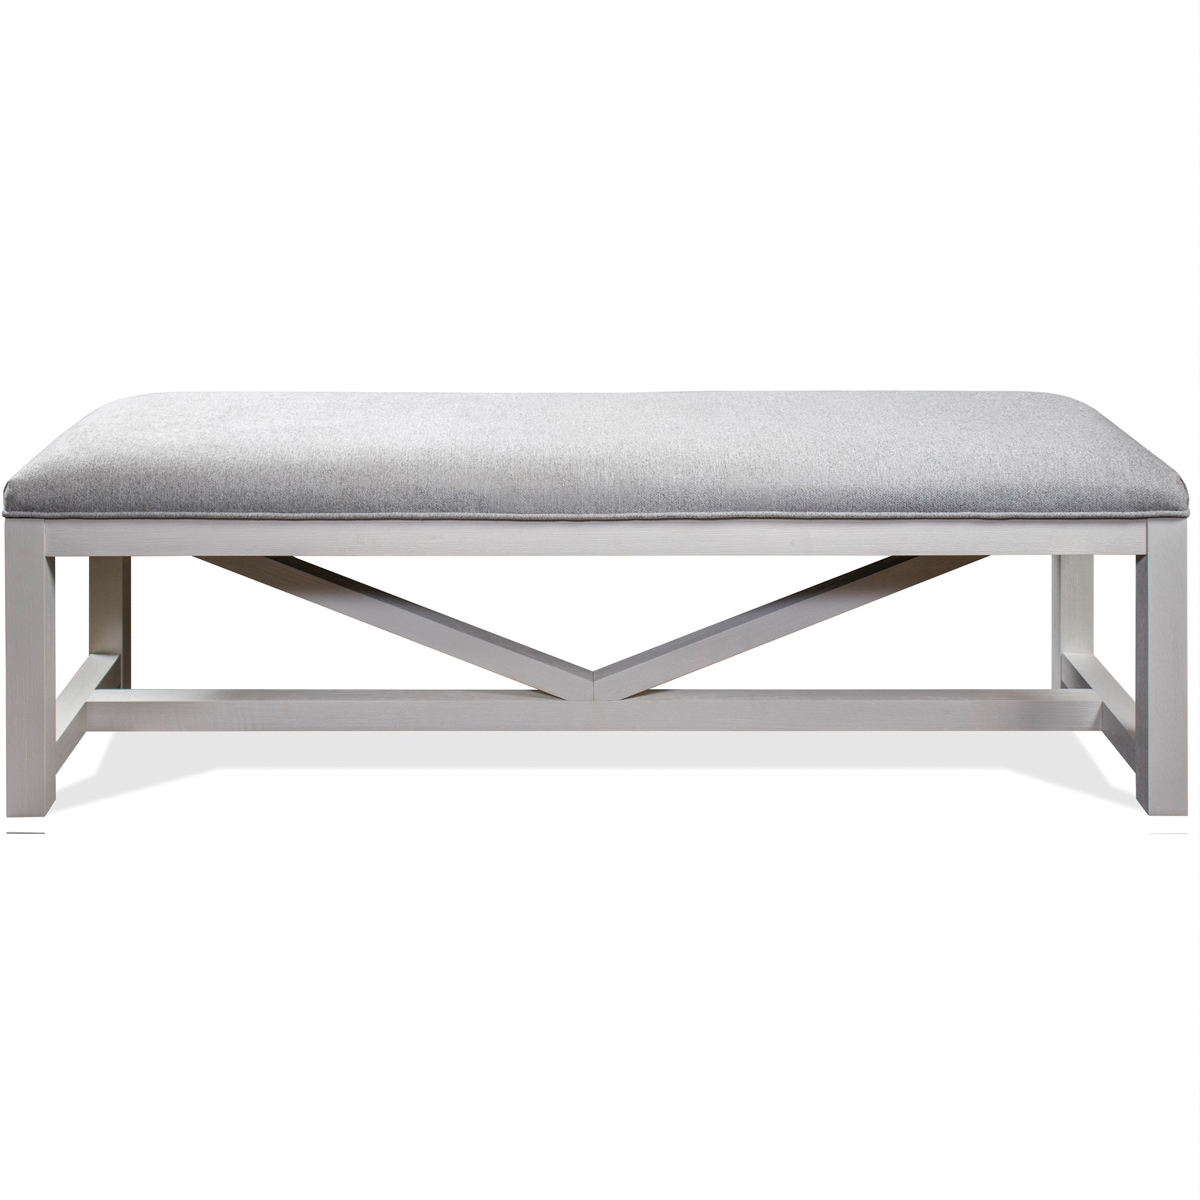 Picture of OSBORNE GRAY DINING BENCH